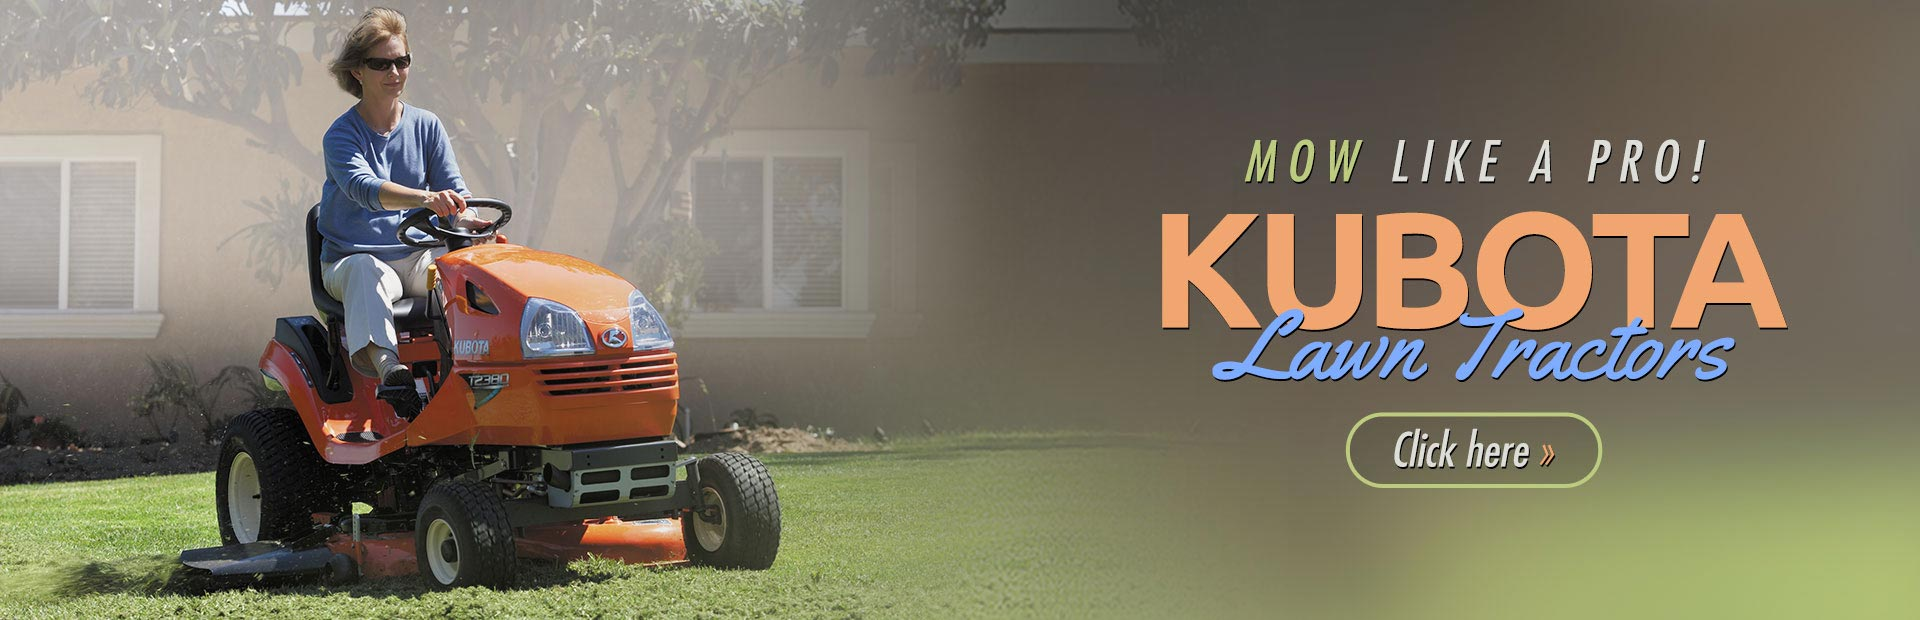 Click here to view our selection of Kubota lawn tractors!